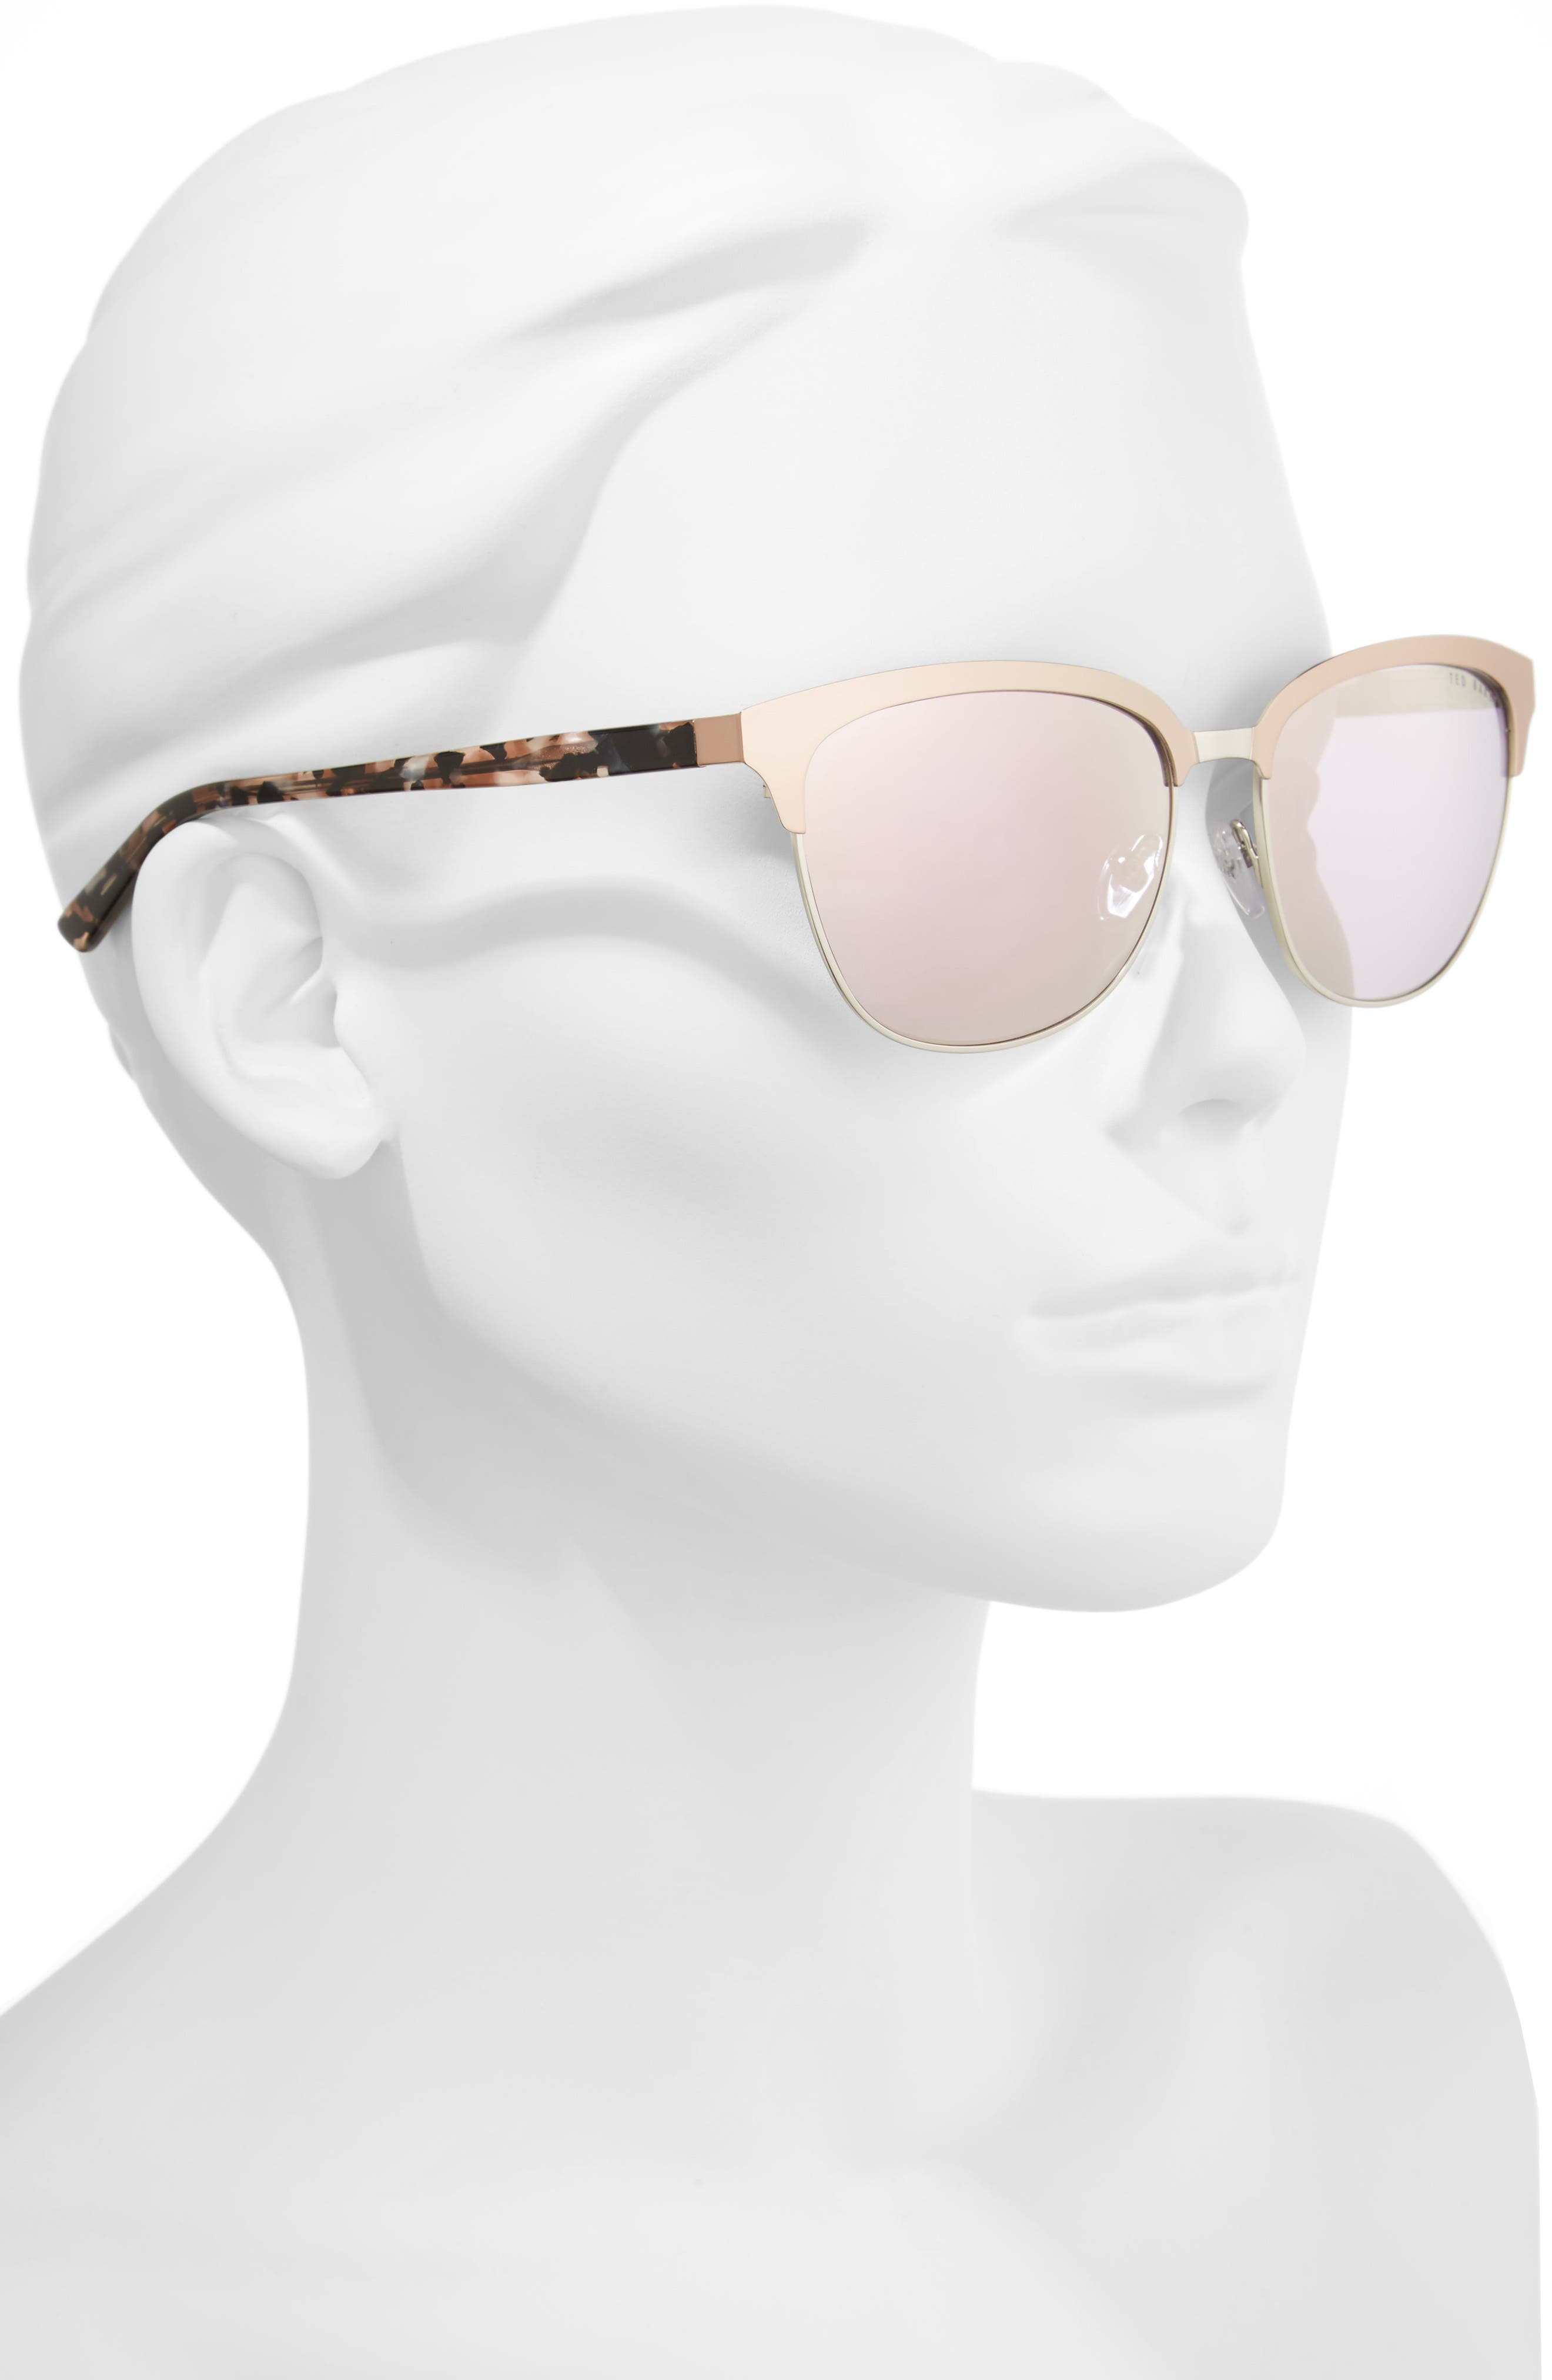 57mm Mirrored Sunglasses,                             Alternate thumbnail 2, color,                             ROSE GOLD